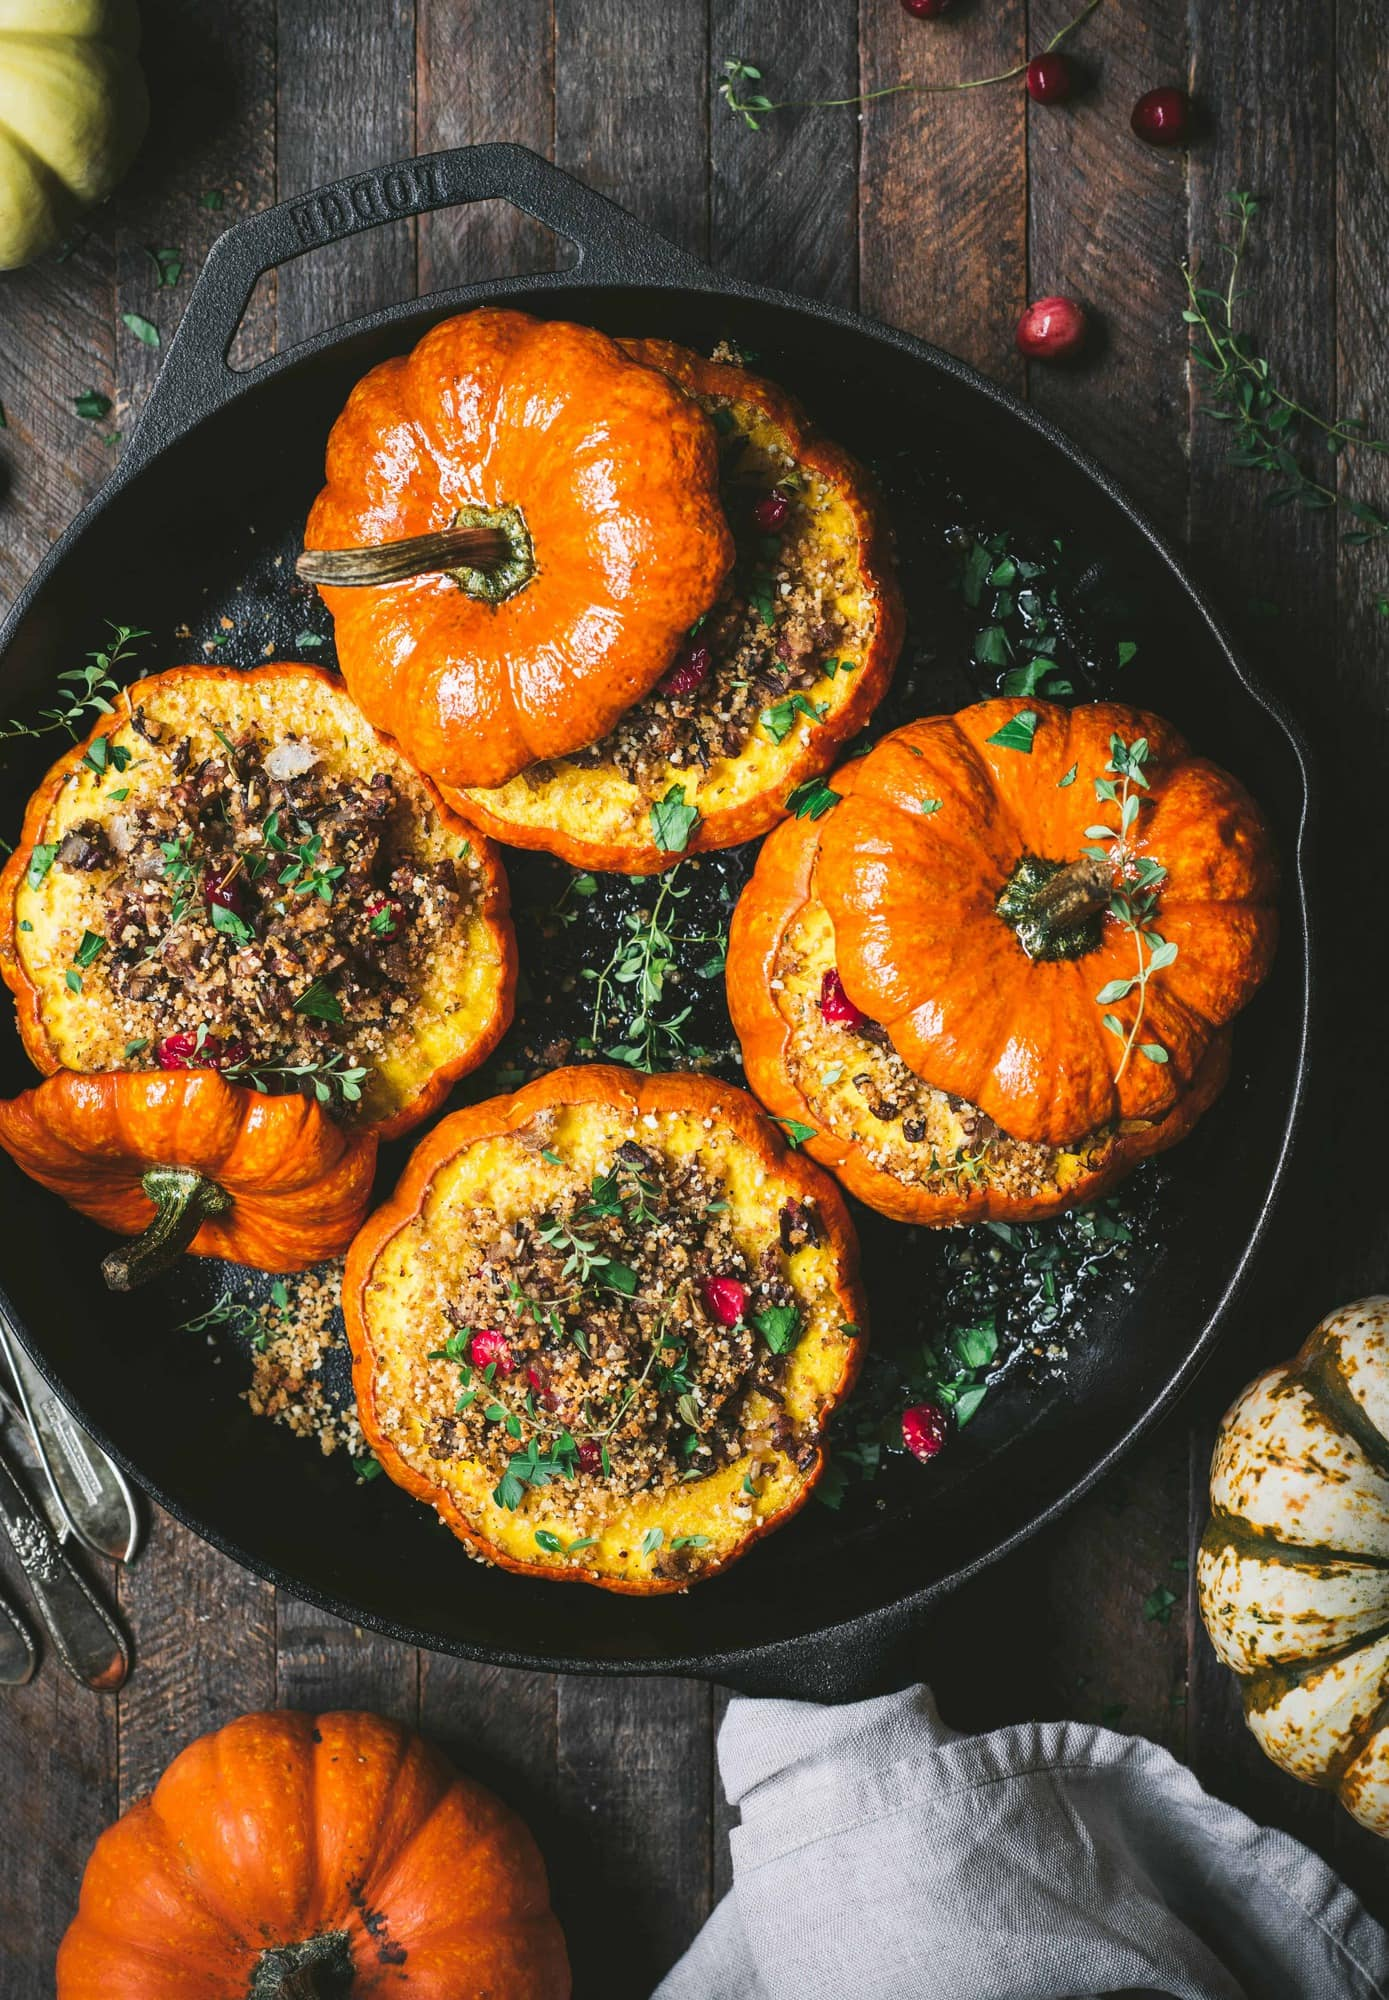 Overhead view of 4 Stuffed Mini Pumpkins with Wild Rice and Mushrooms in a cast iron skillet